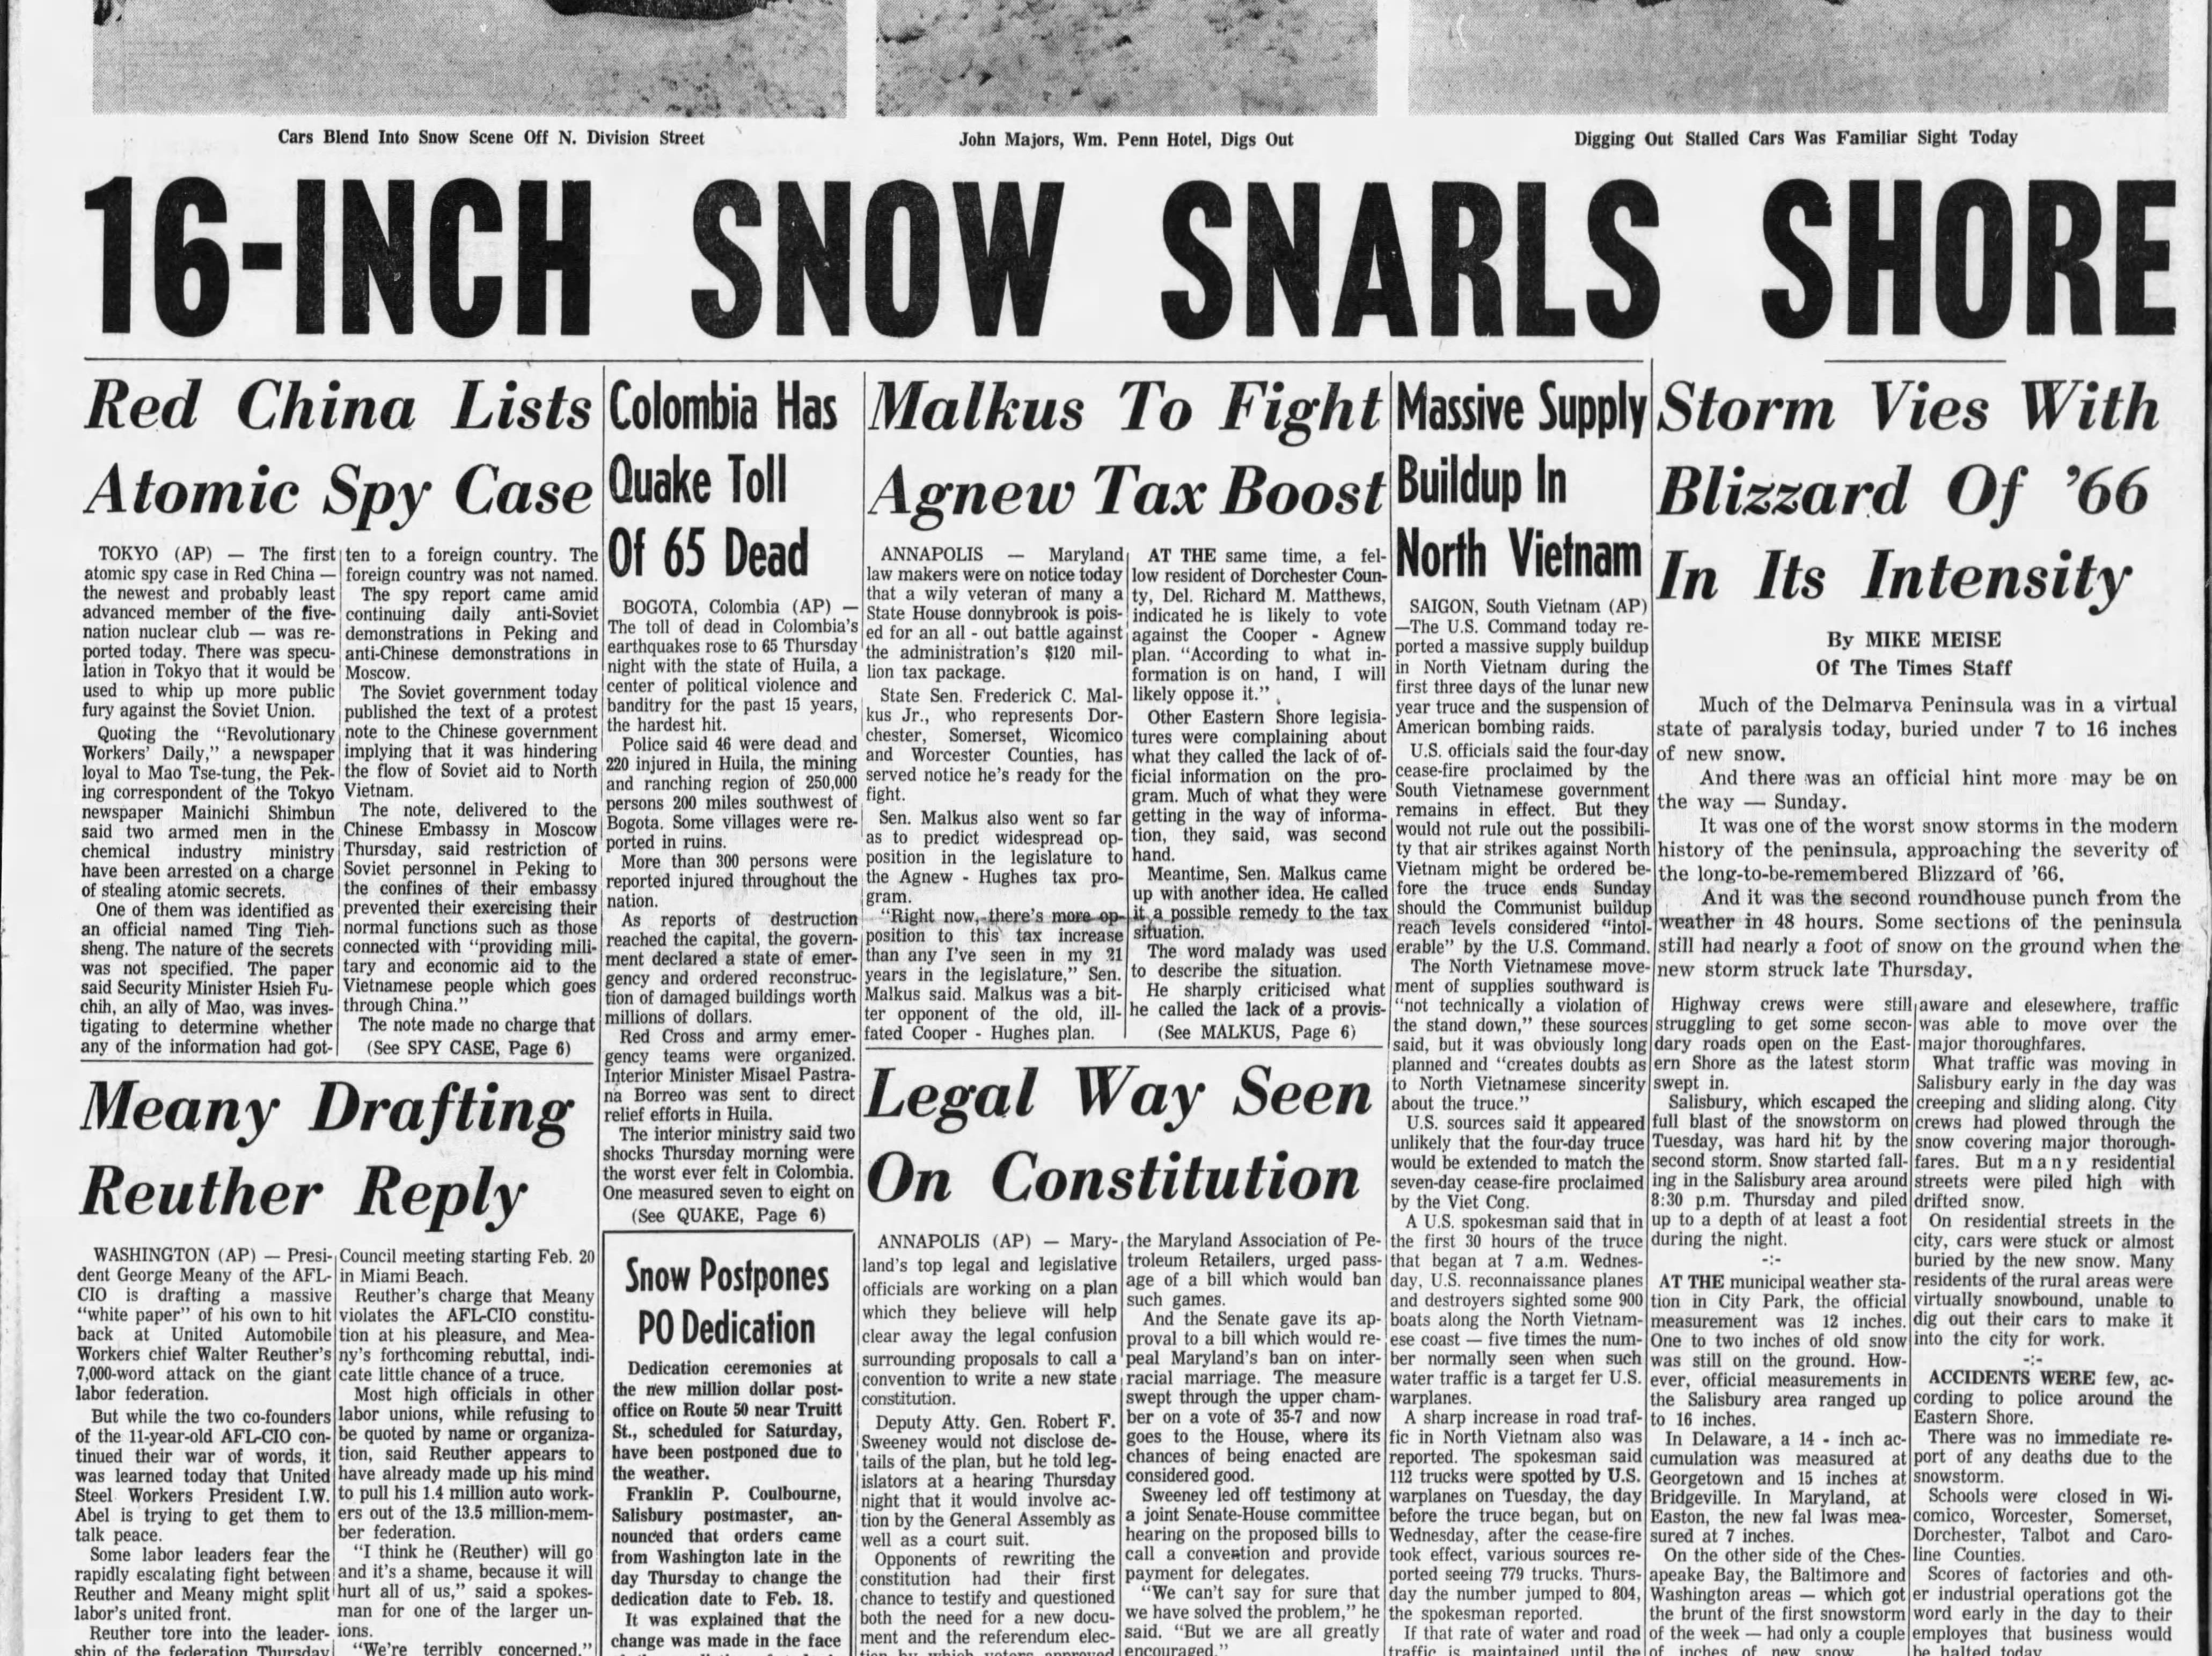 On Feb 9-10, 1967 the Salisbury area saw 11 inches of snowfall.